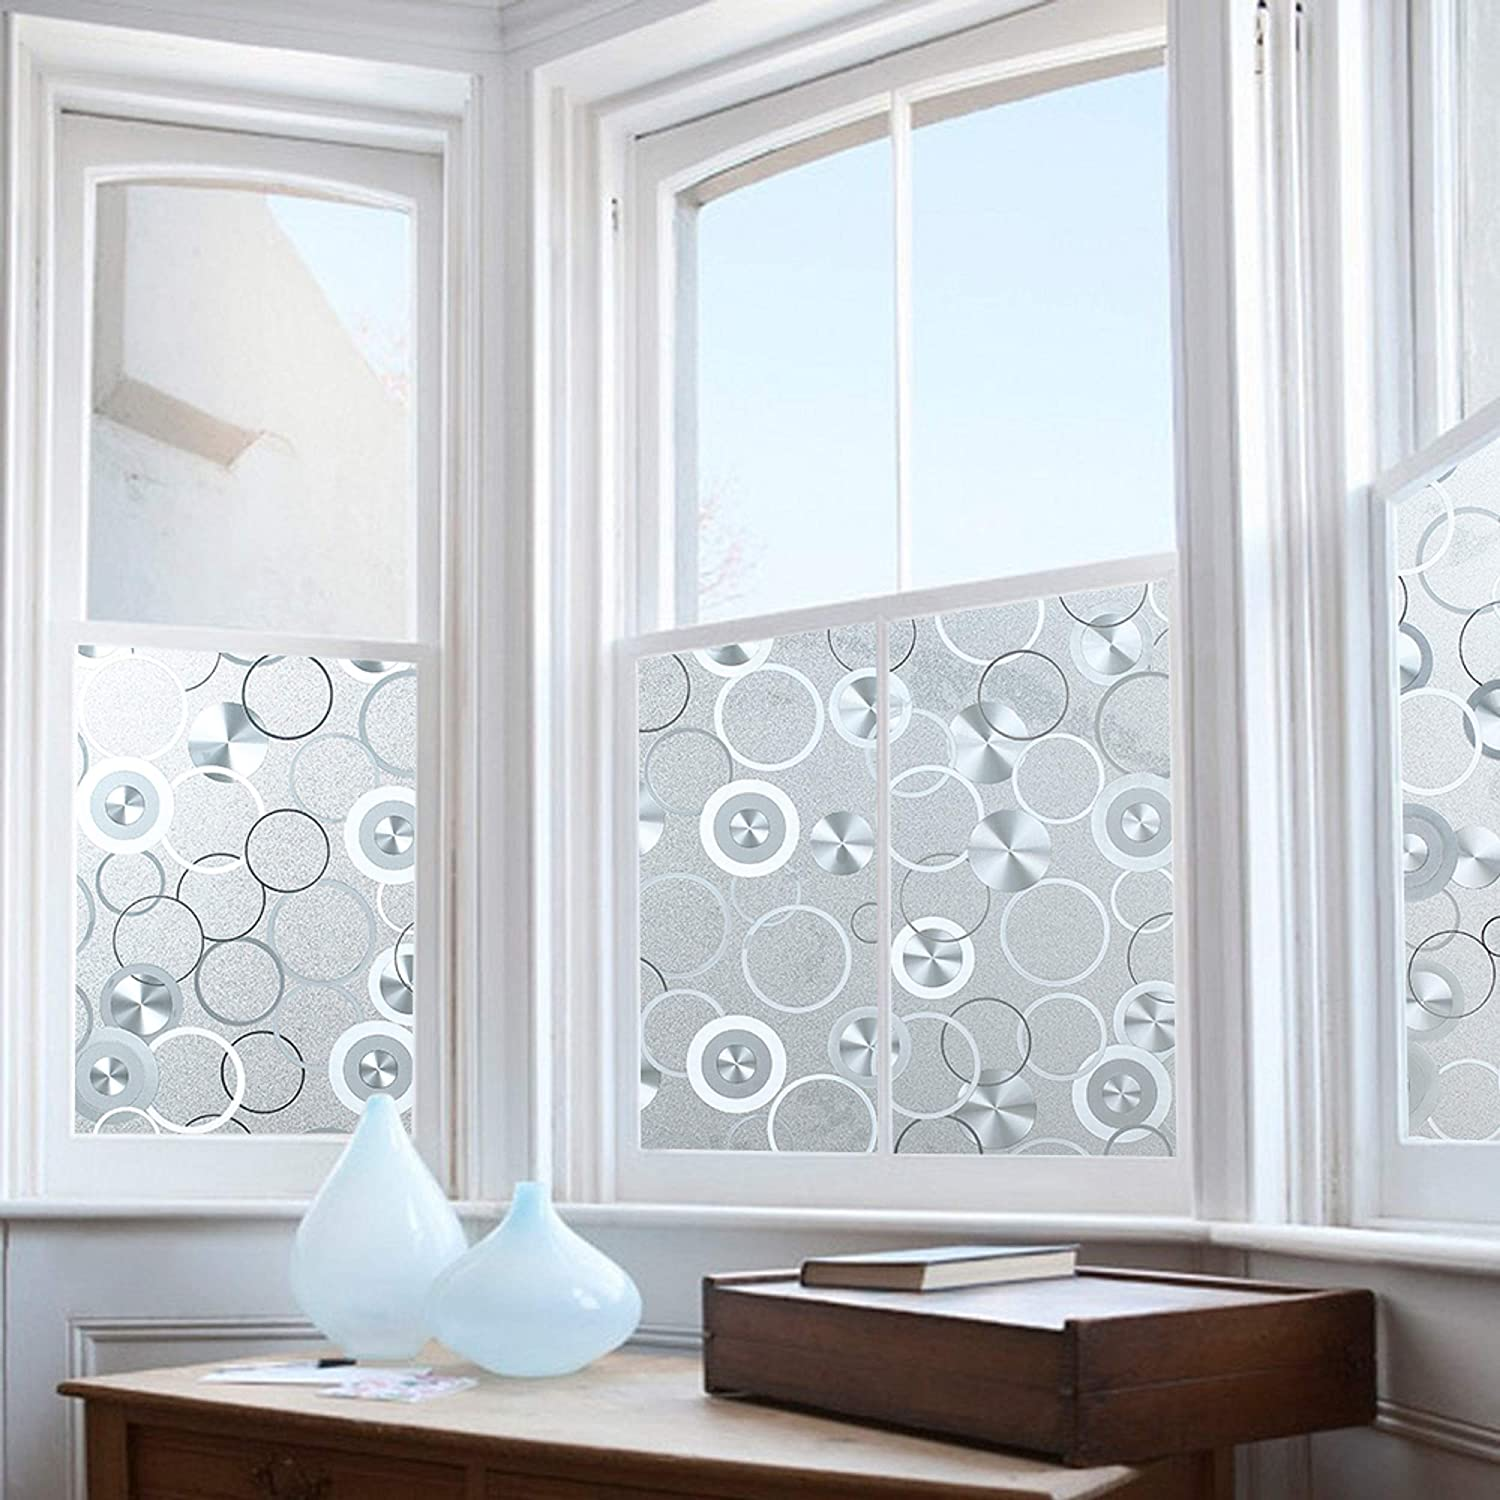 Amazing Decorative Window Film Ideas Cool Privacy Window Film, Decorative Static Cling Glass, Home u0026 Office Film,  Stained Circles, Self Adhesive Sticker Frosted Privacy Pattern PVC Vinyl  Glass ...